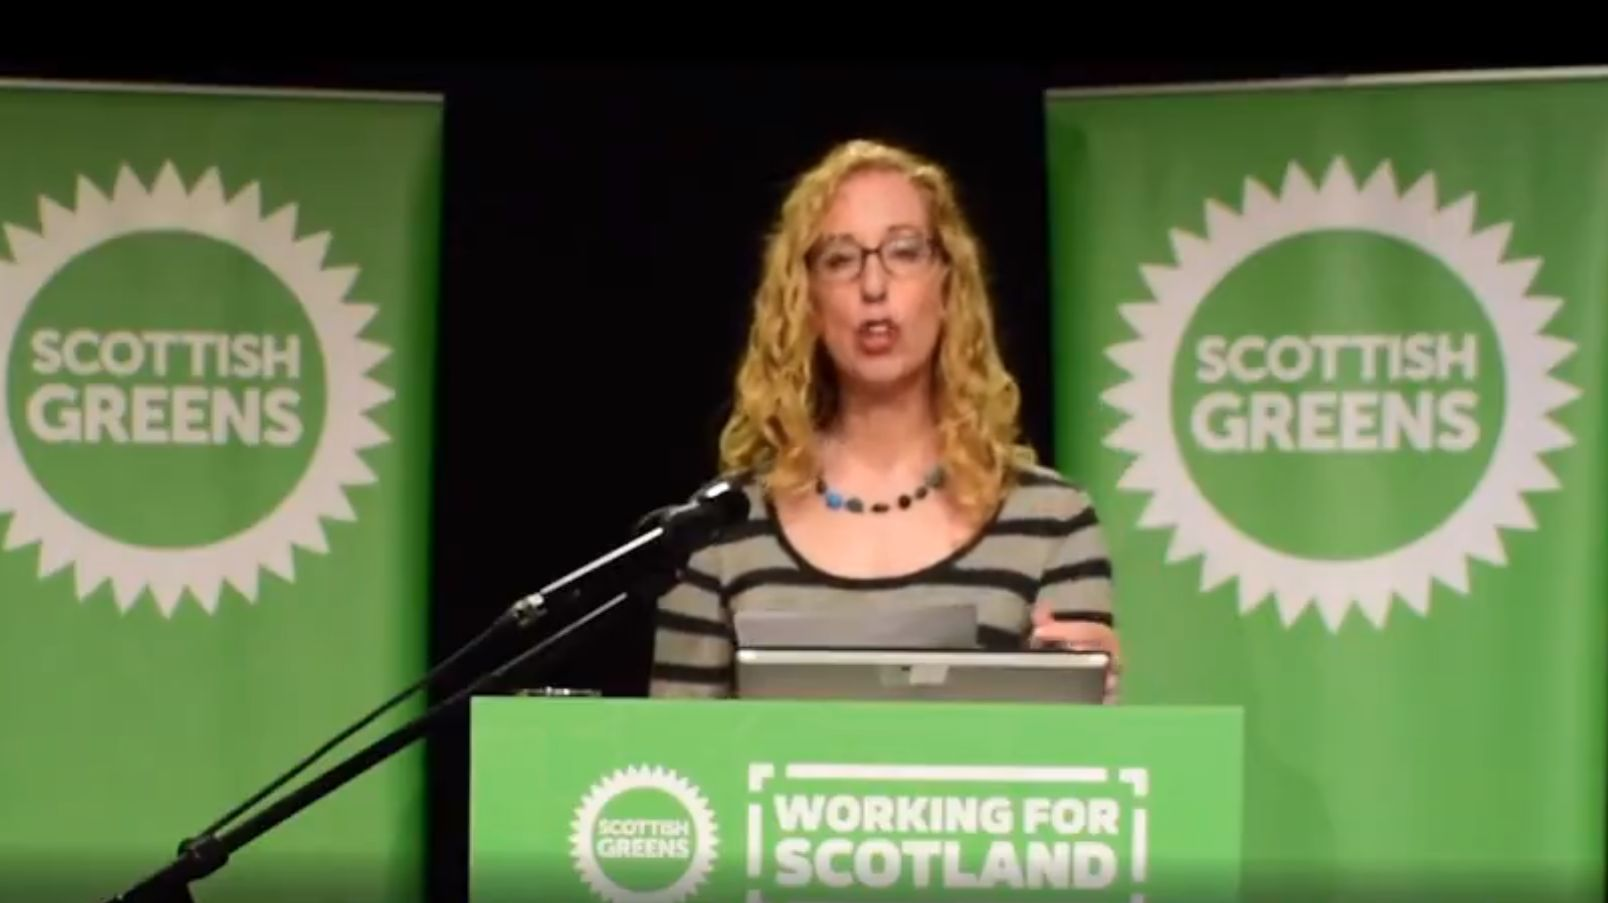 Scottish Greens aim to catch Labour in next year's Holyrood election